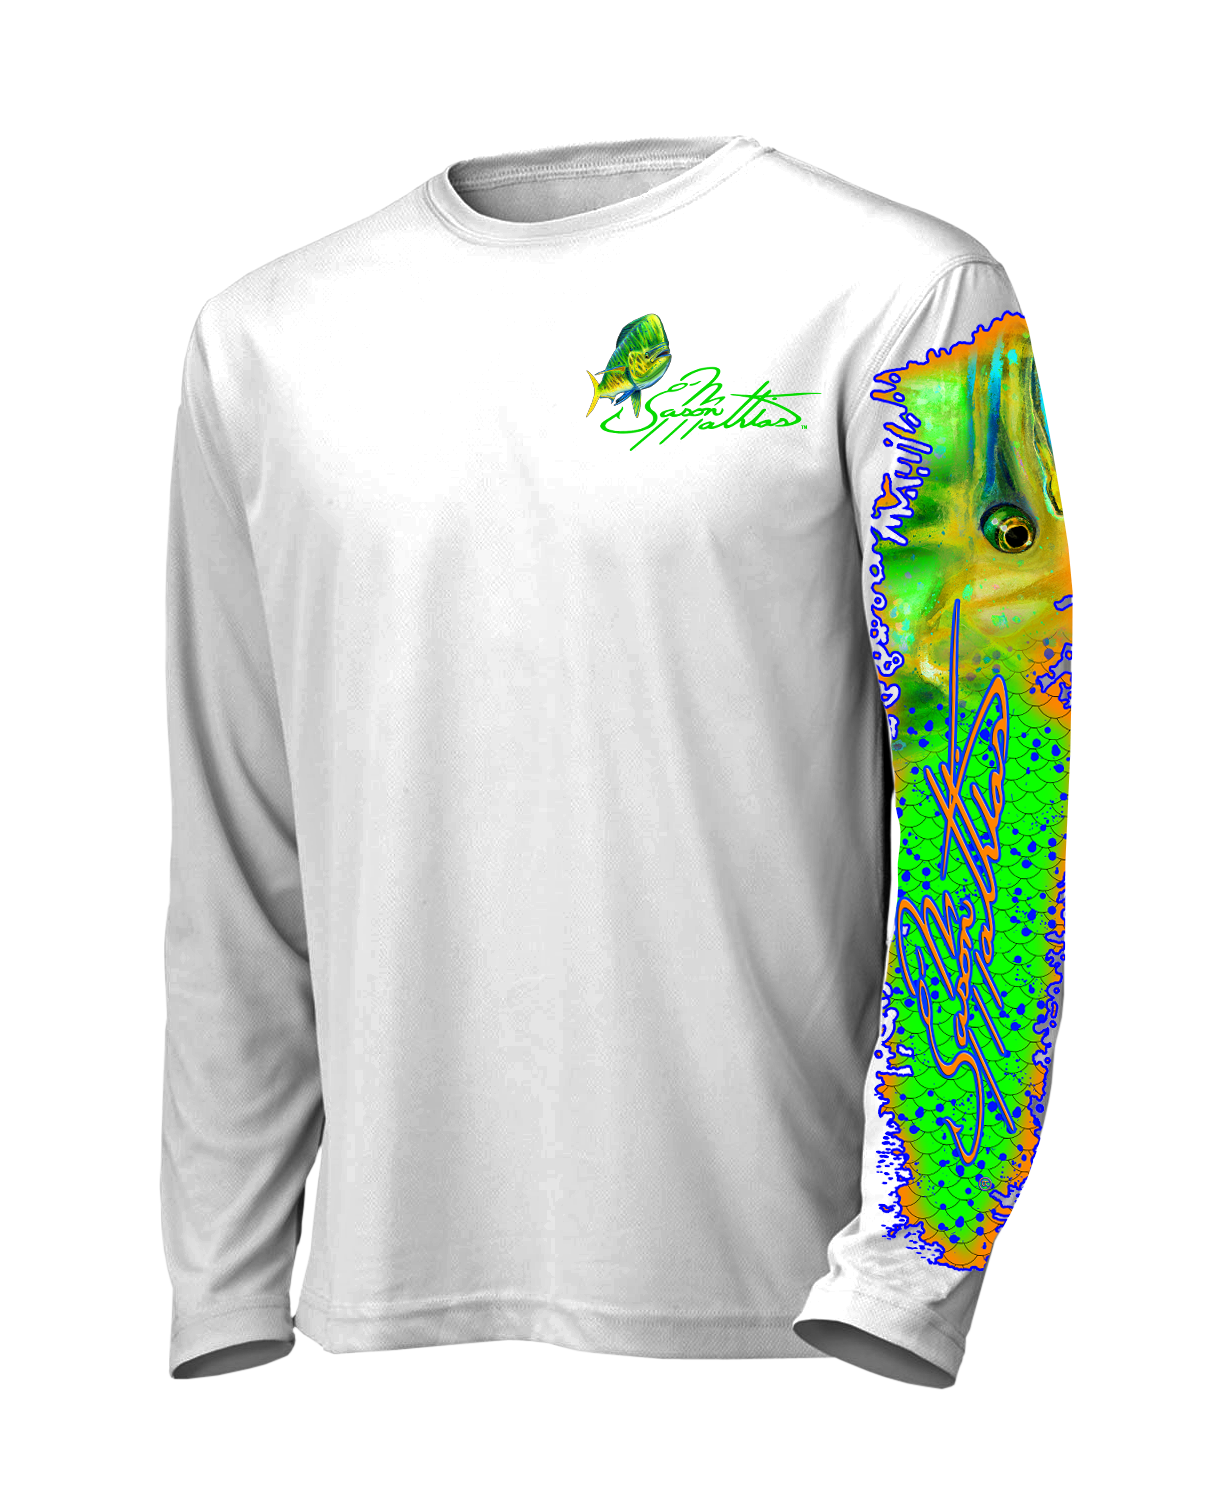 mahi-shirt-white-front-jason-mathias.png